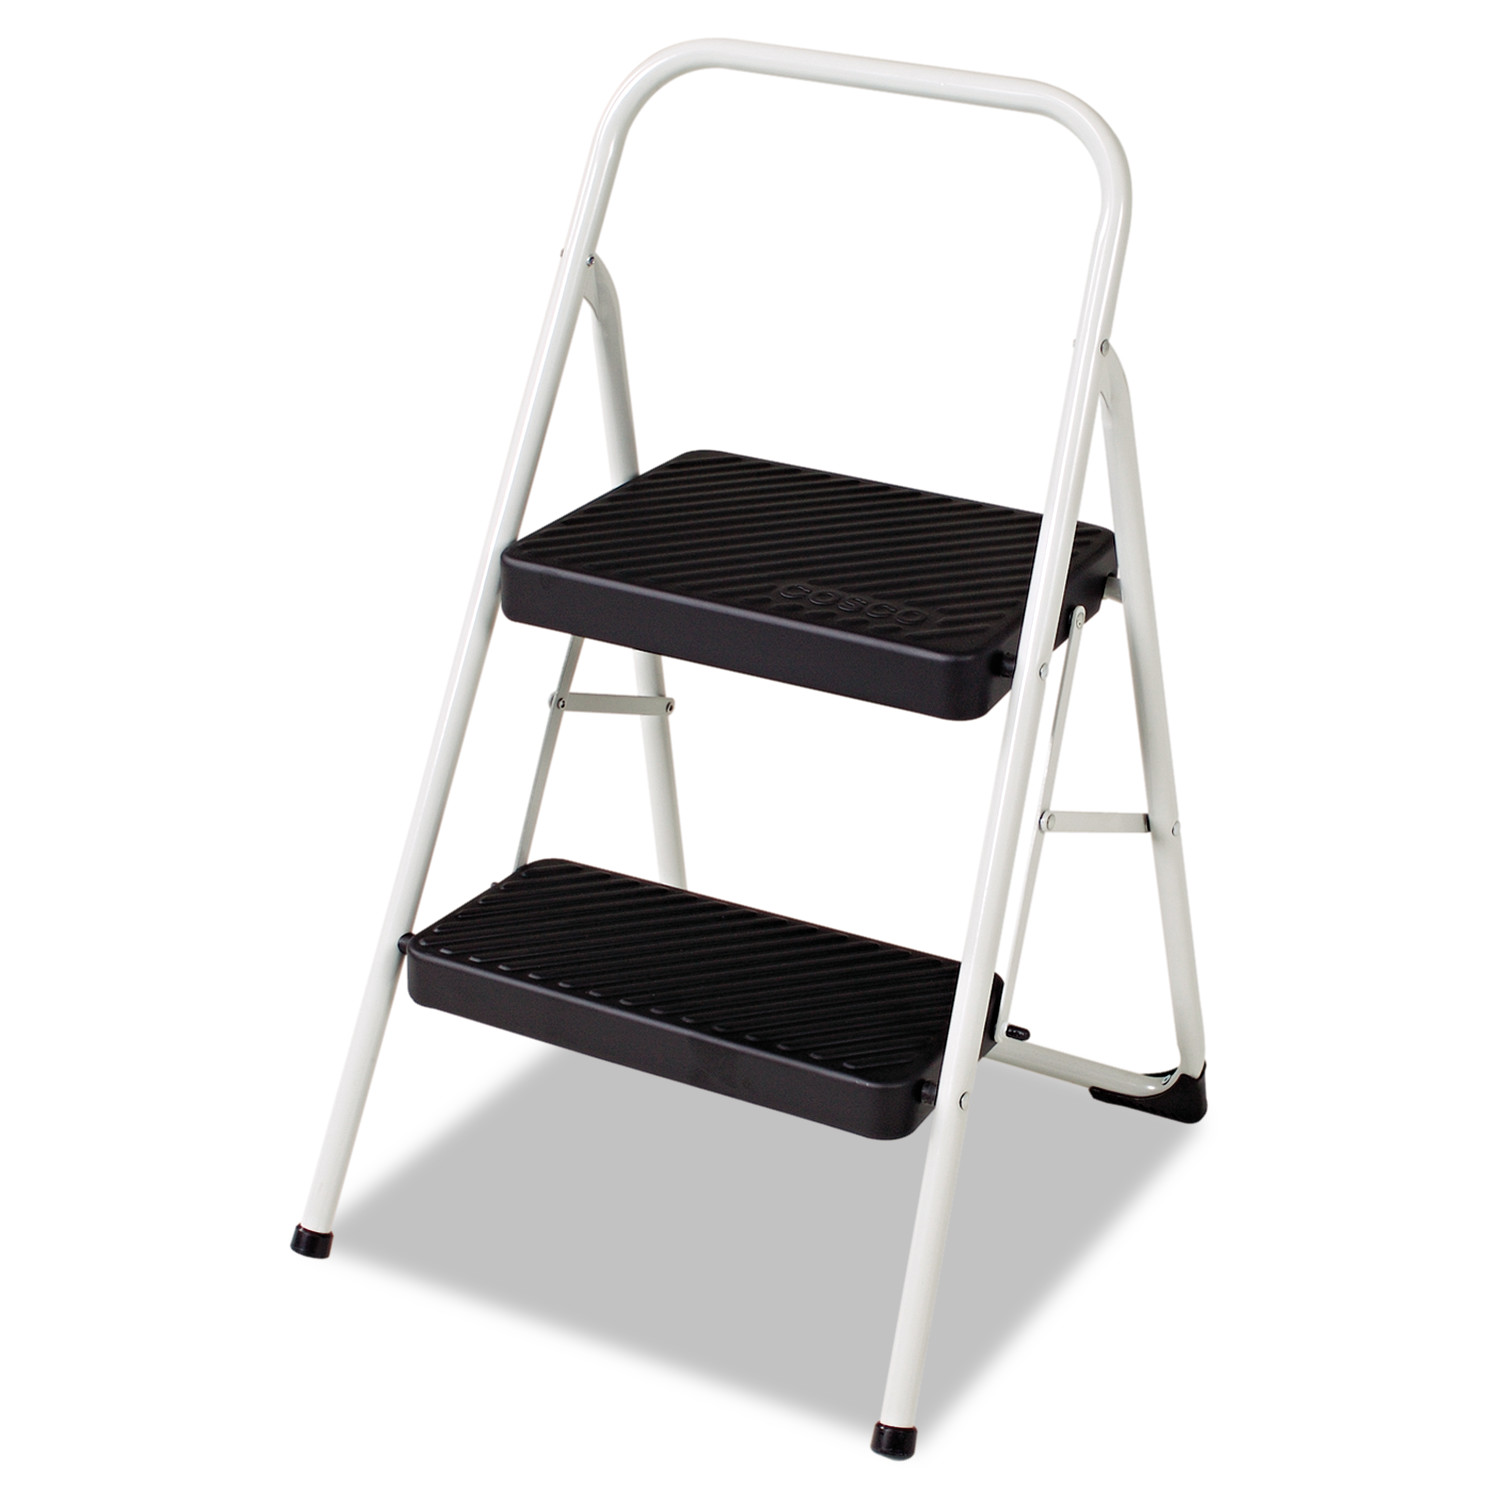 Cosco 2 Step Folding Steel Step Stool 200lbs Cool Gray